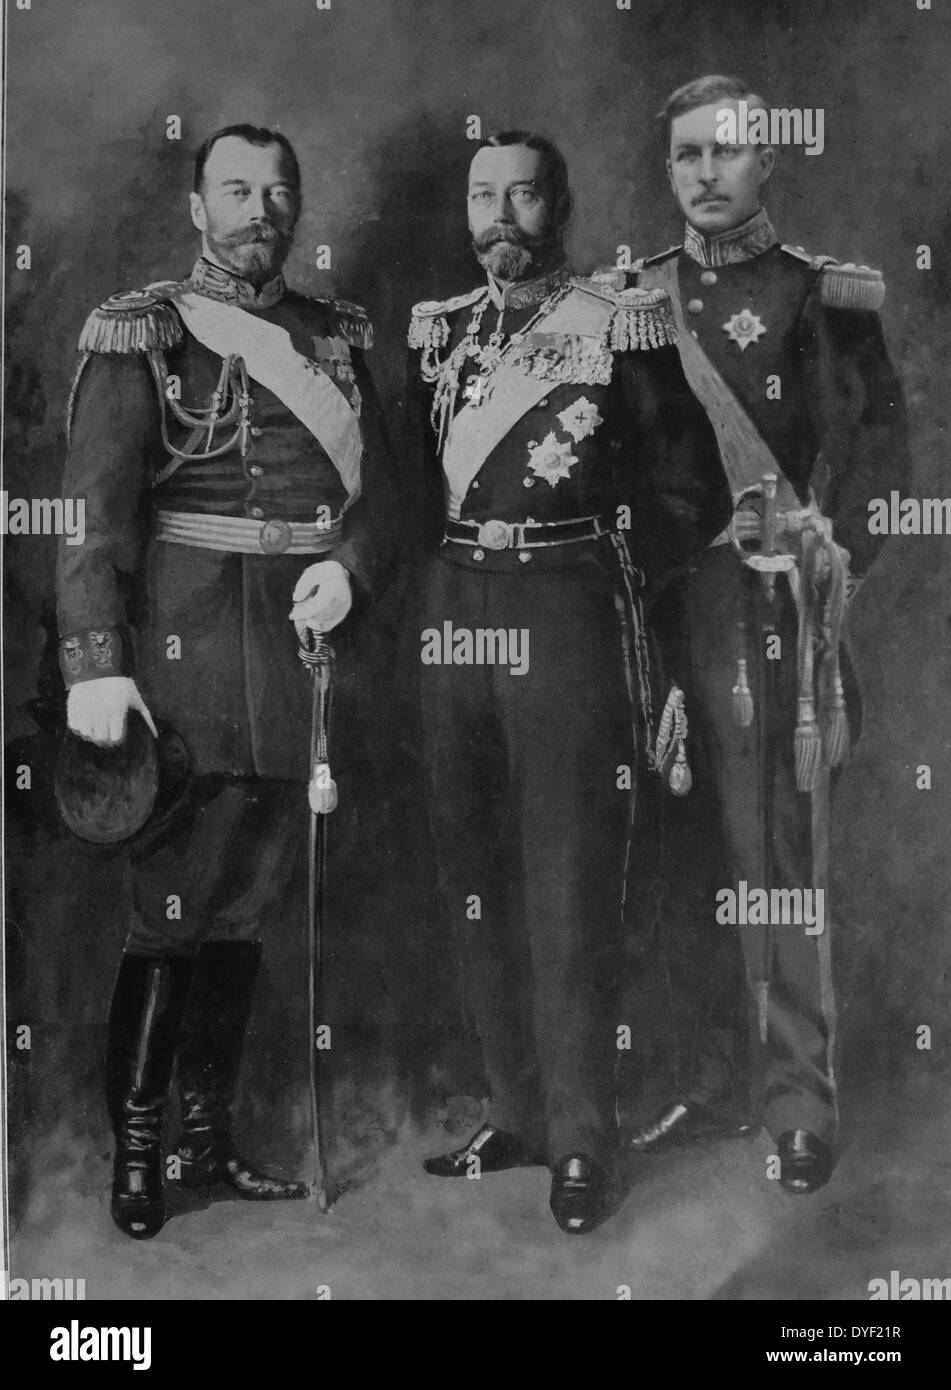 Three allied monarchs at the outset of World War I. - Stock Image